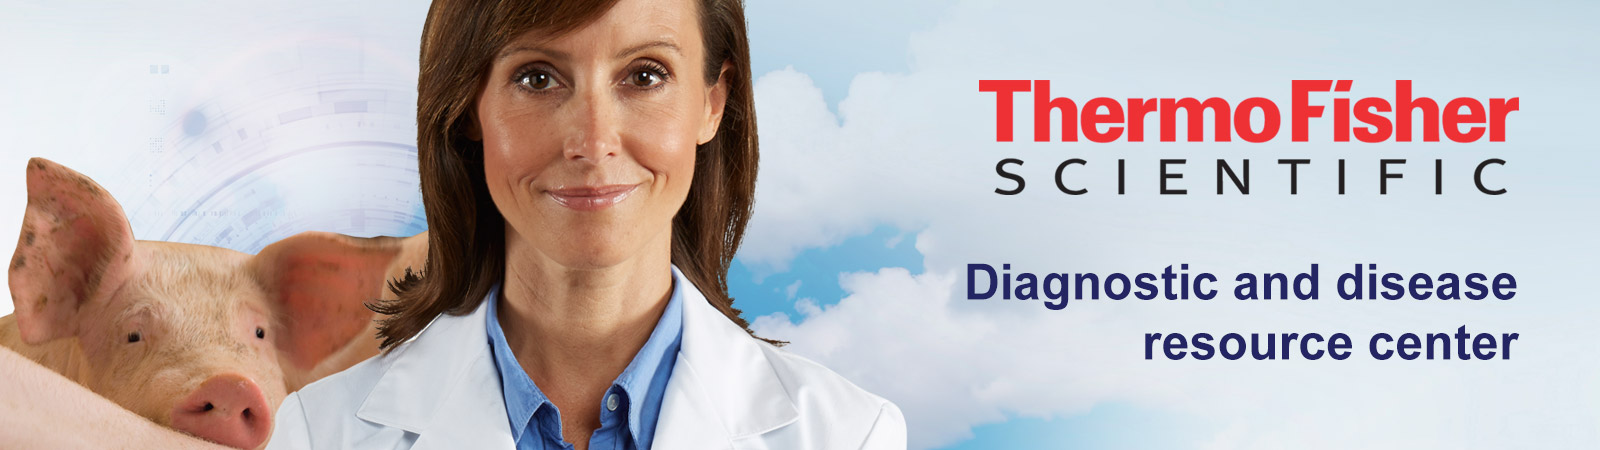 ThermoFisher Scientific - Diagnostic and disease resource center